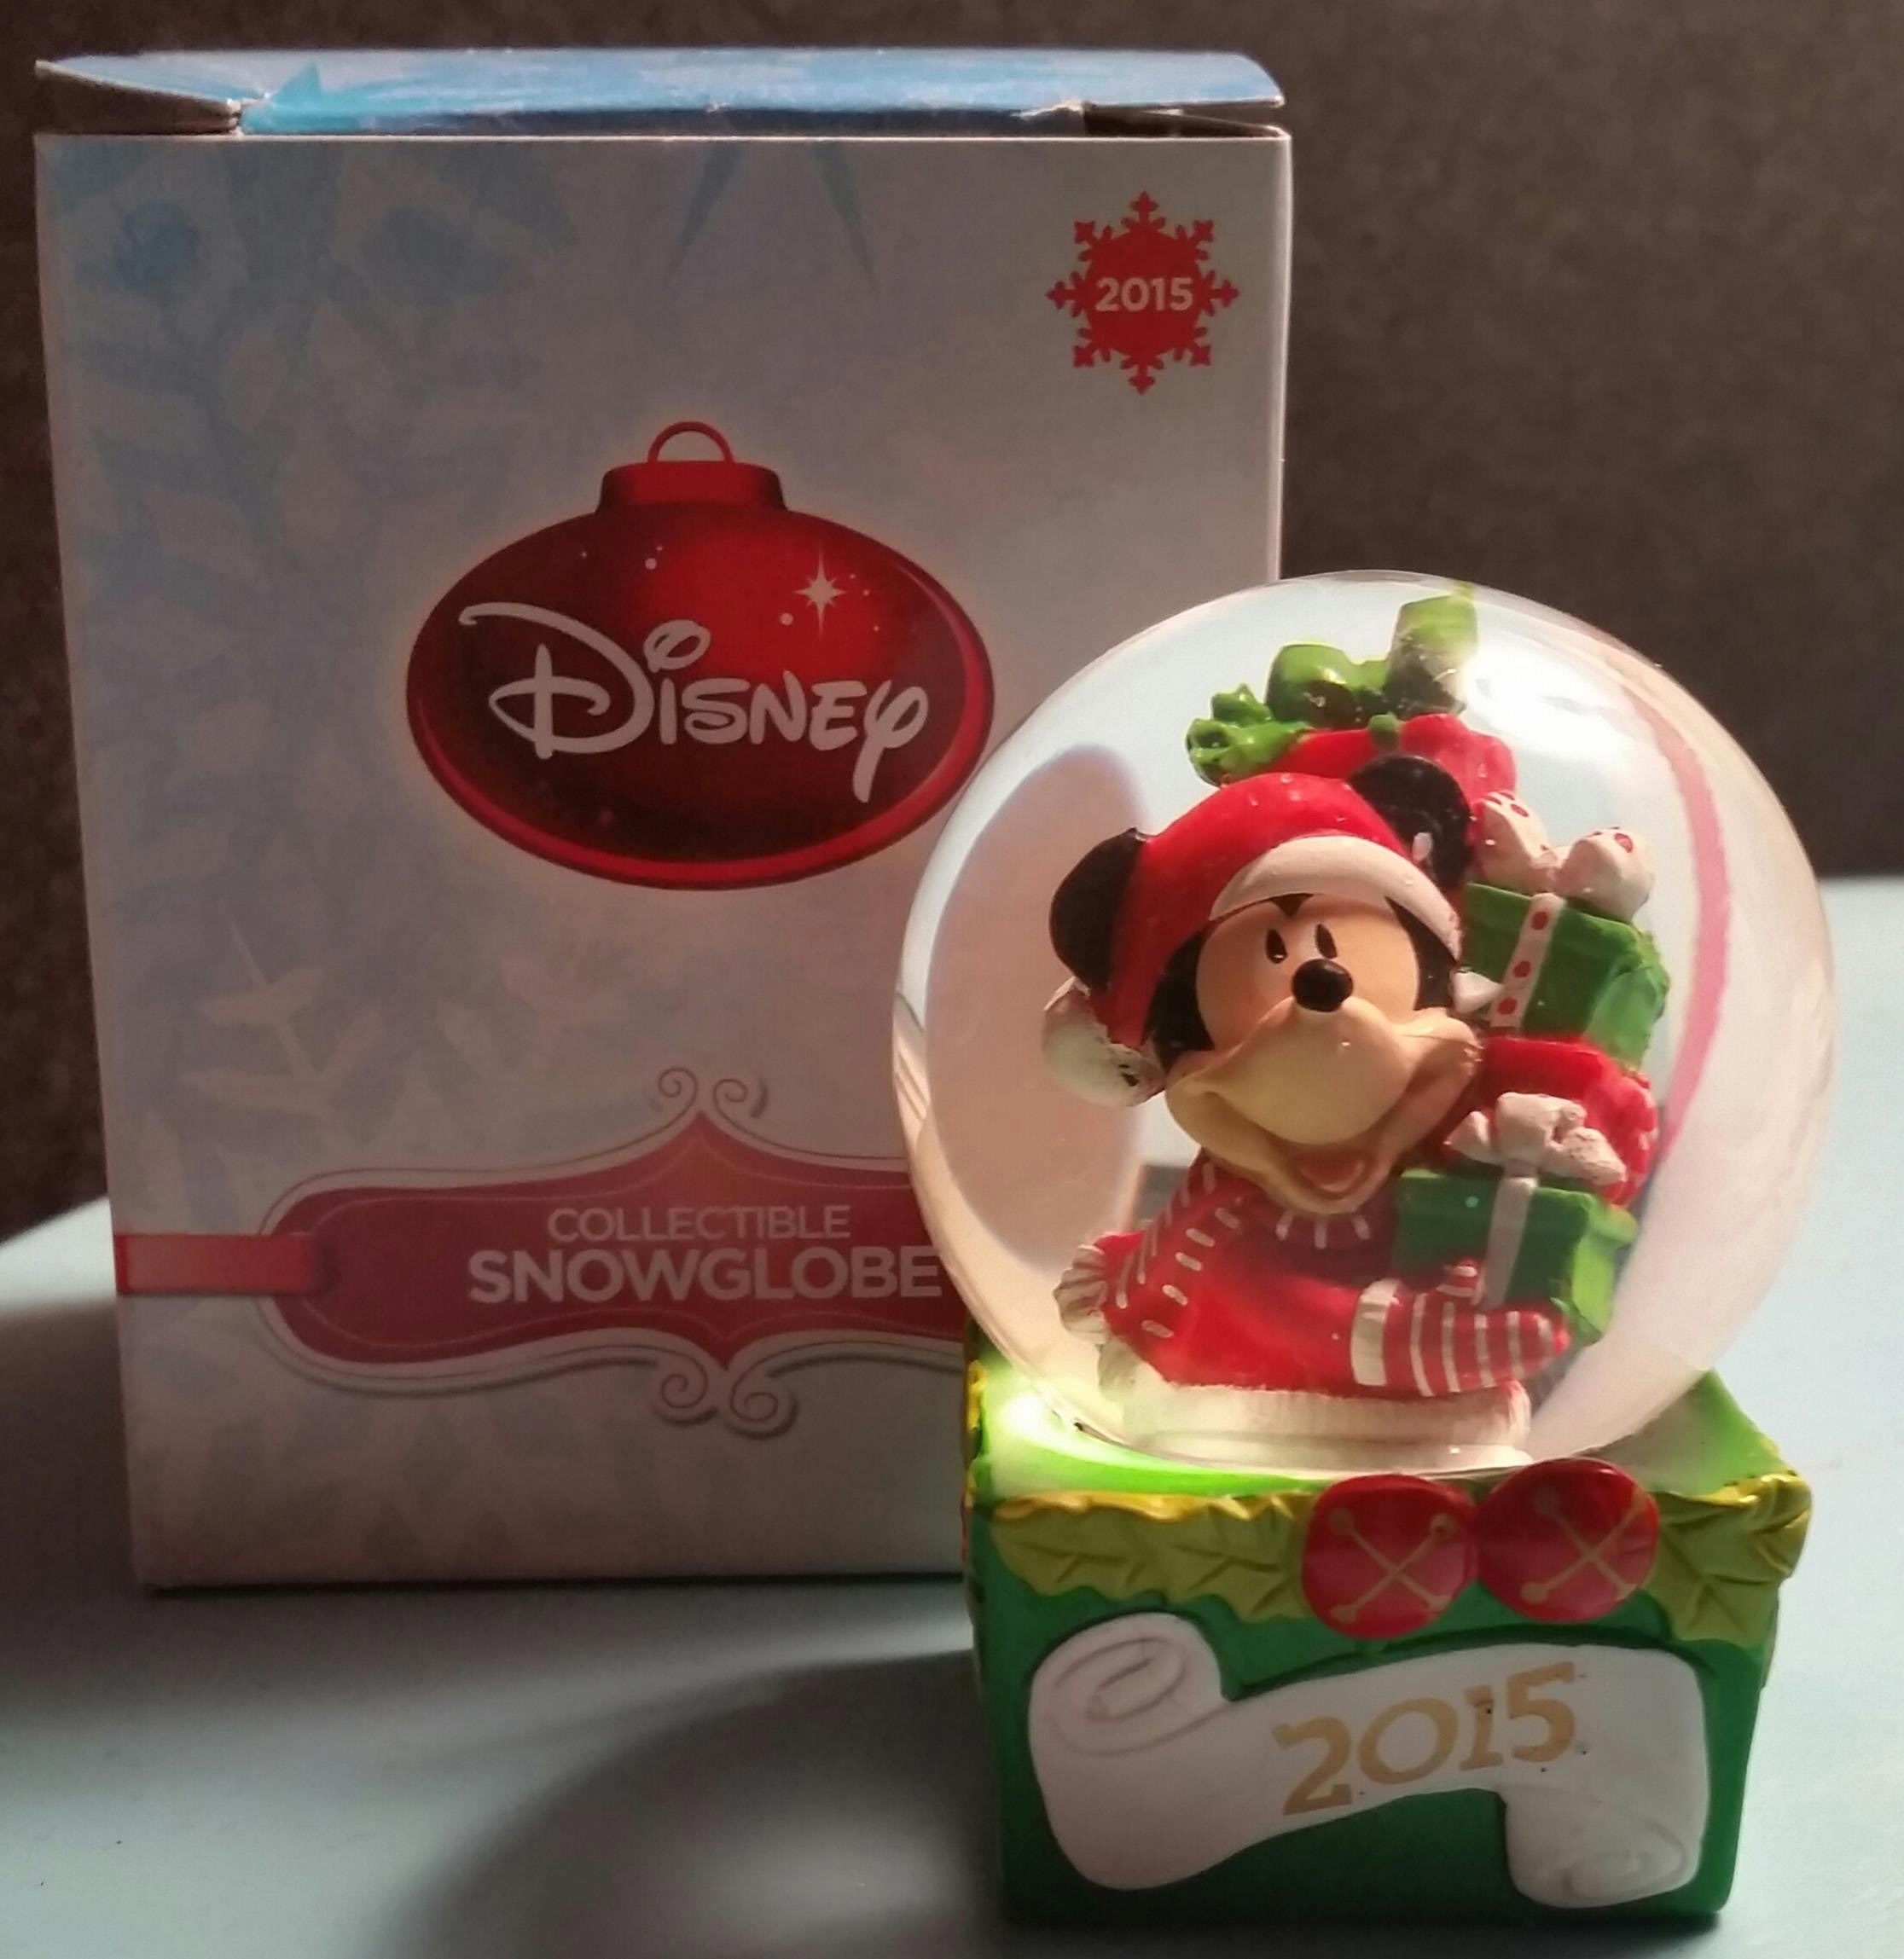 JC Penney stores gave out free Disney snow globes on Black Friday this year.